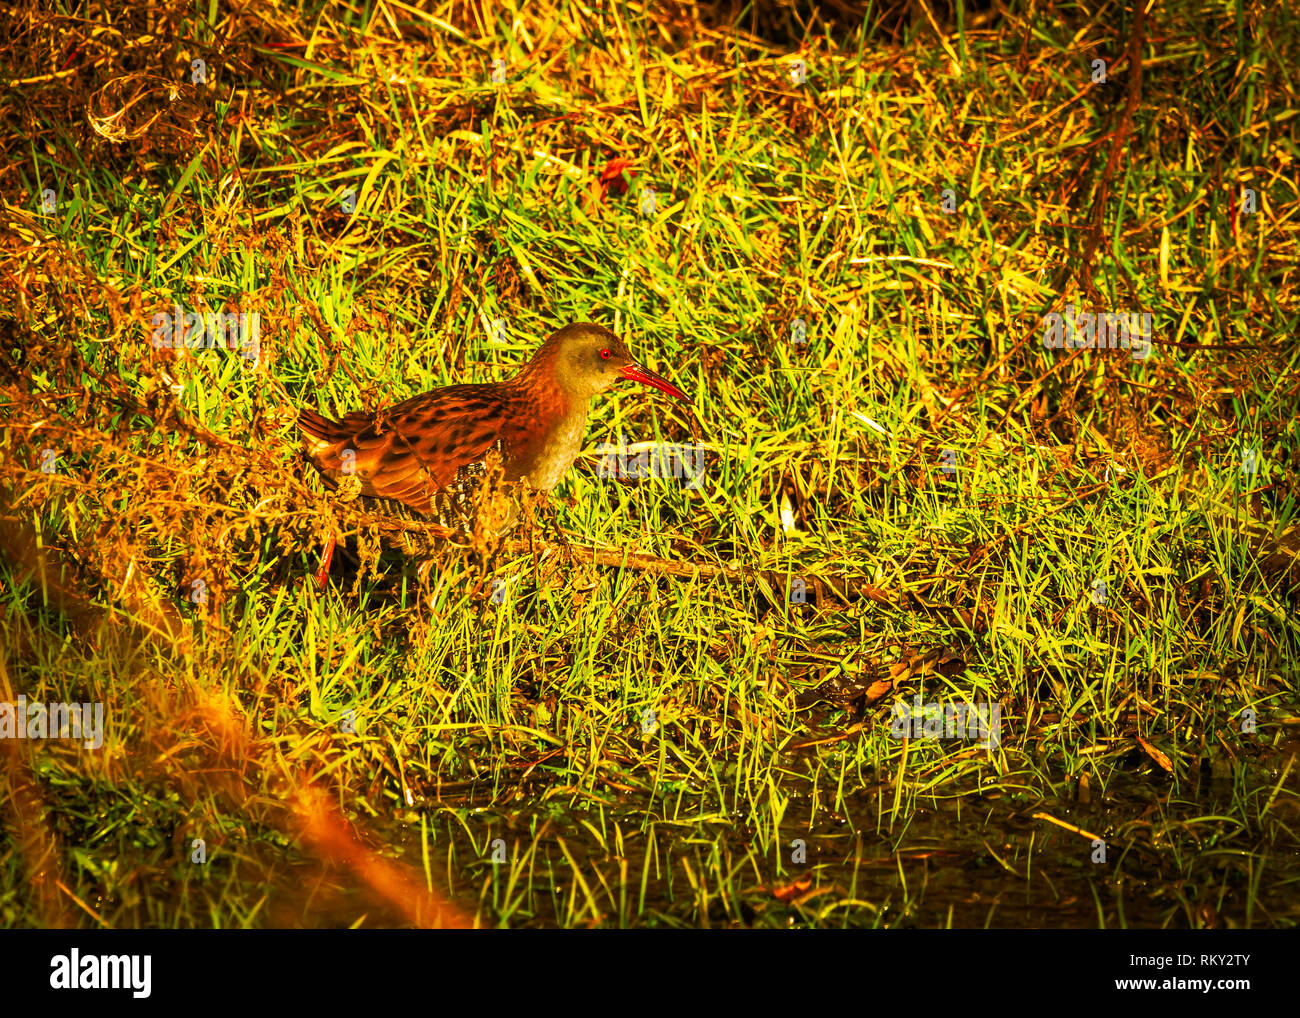 The water rail (Rallus aquaticus) is a bird of the rail family which breeds in well-vegetated wetlands across Europe, February 2019 Northwich Cheshire - Stock Image